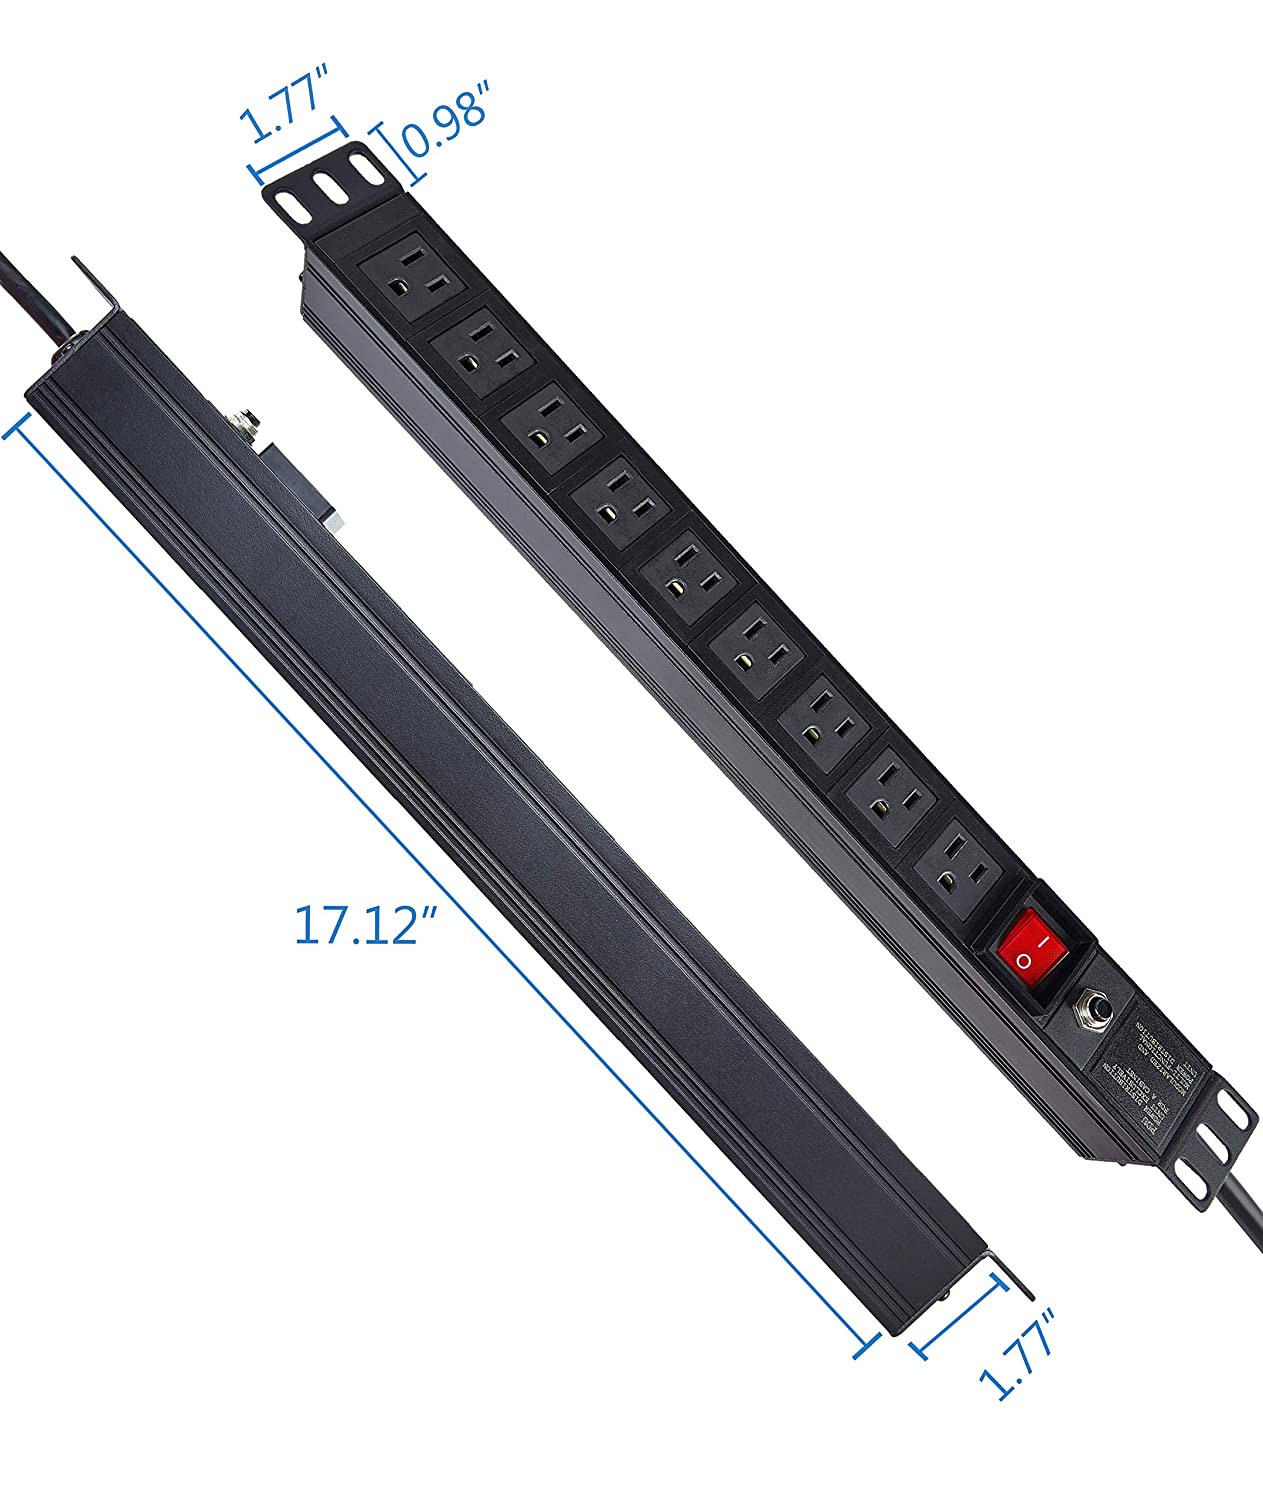 Industrial 1U//15A//110V Kungfuking 9 Outlets Power Strip Rack Mount PDU Outlet Strip Server Rack Mount Electrical Outlet with 6 FT Power Cord for Commercial School and Home